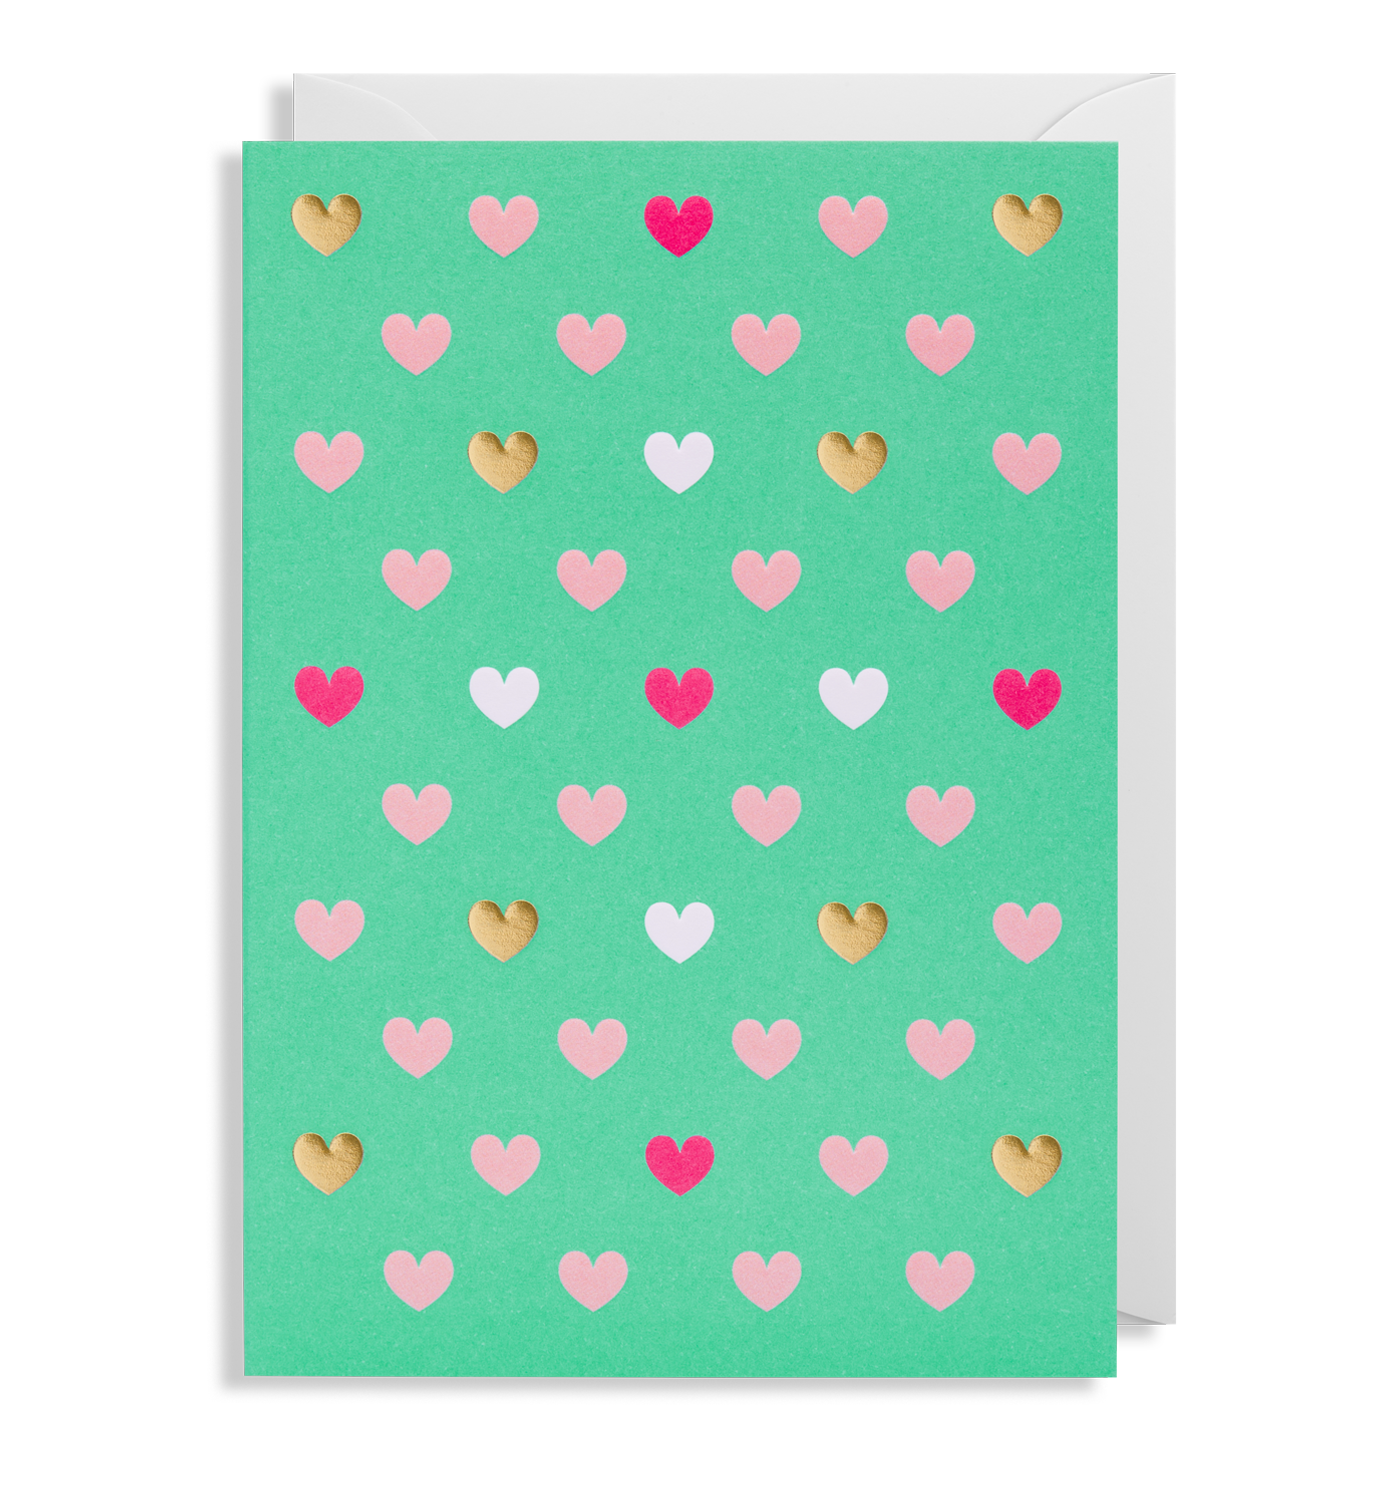 Love Hearts Greeting Card - Lagom Design